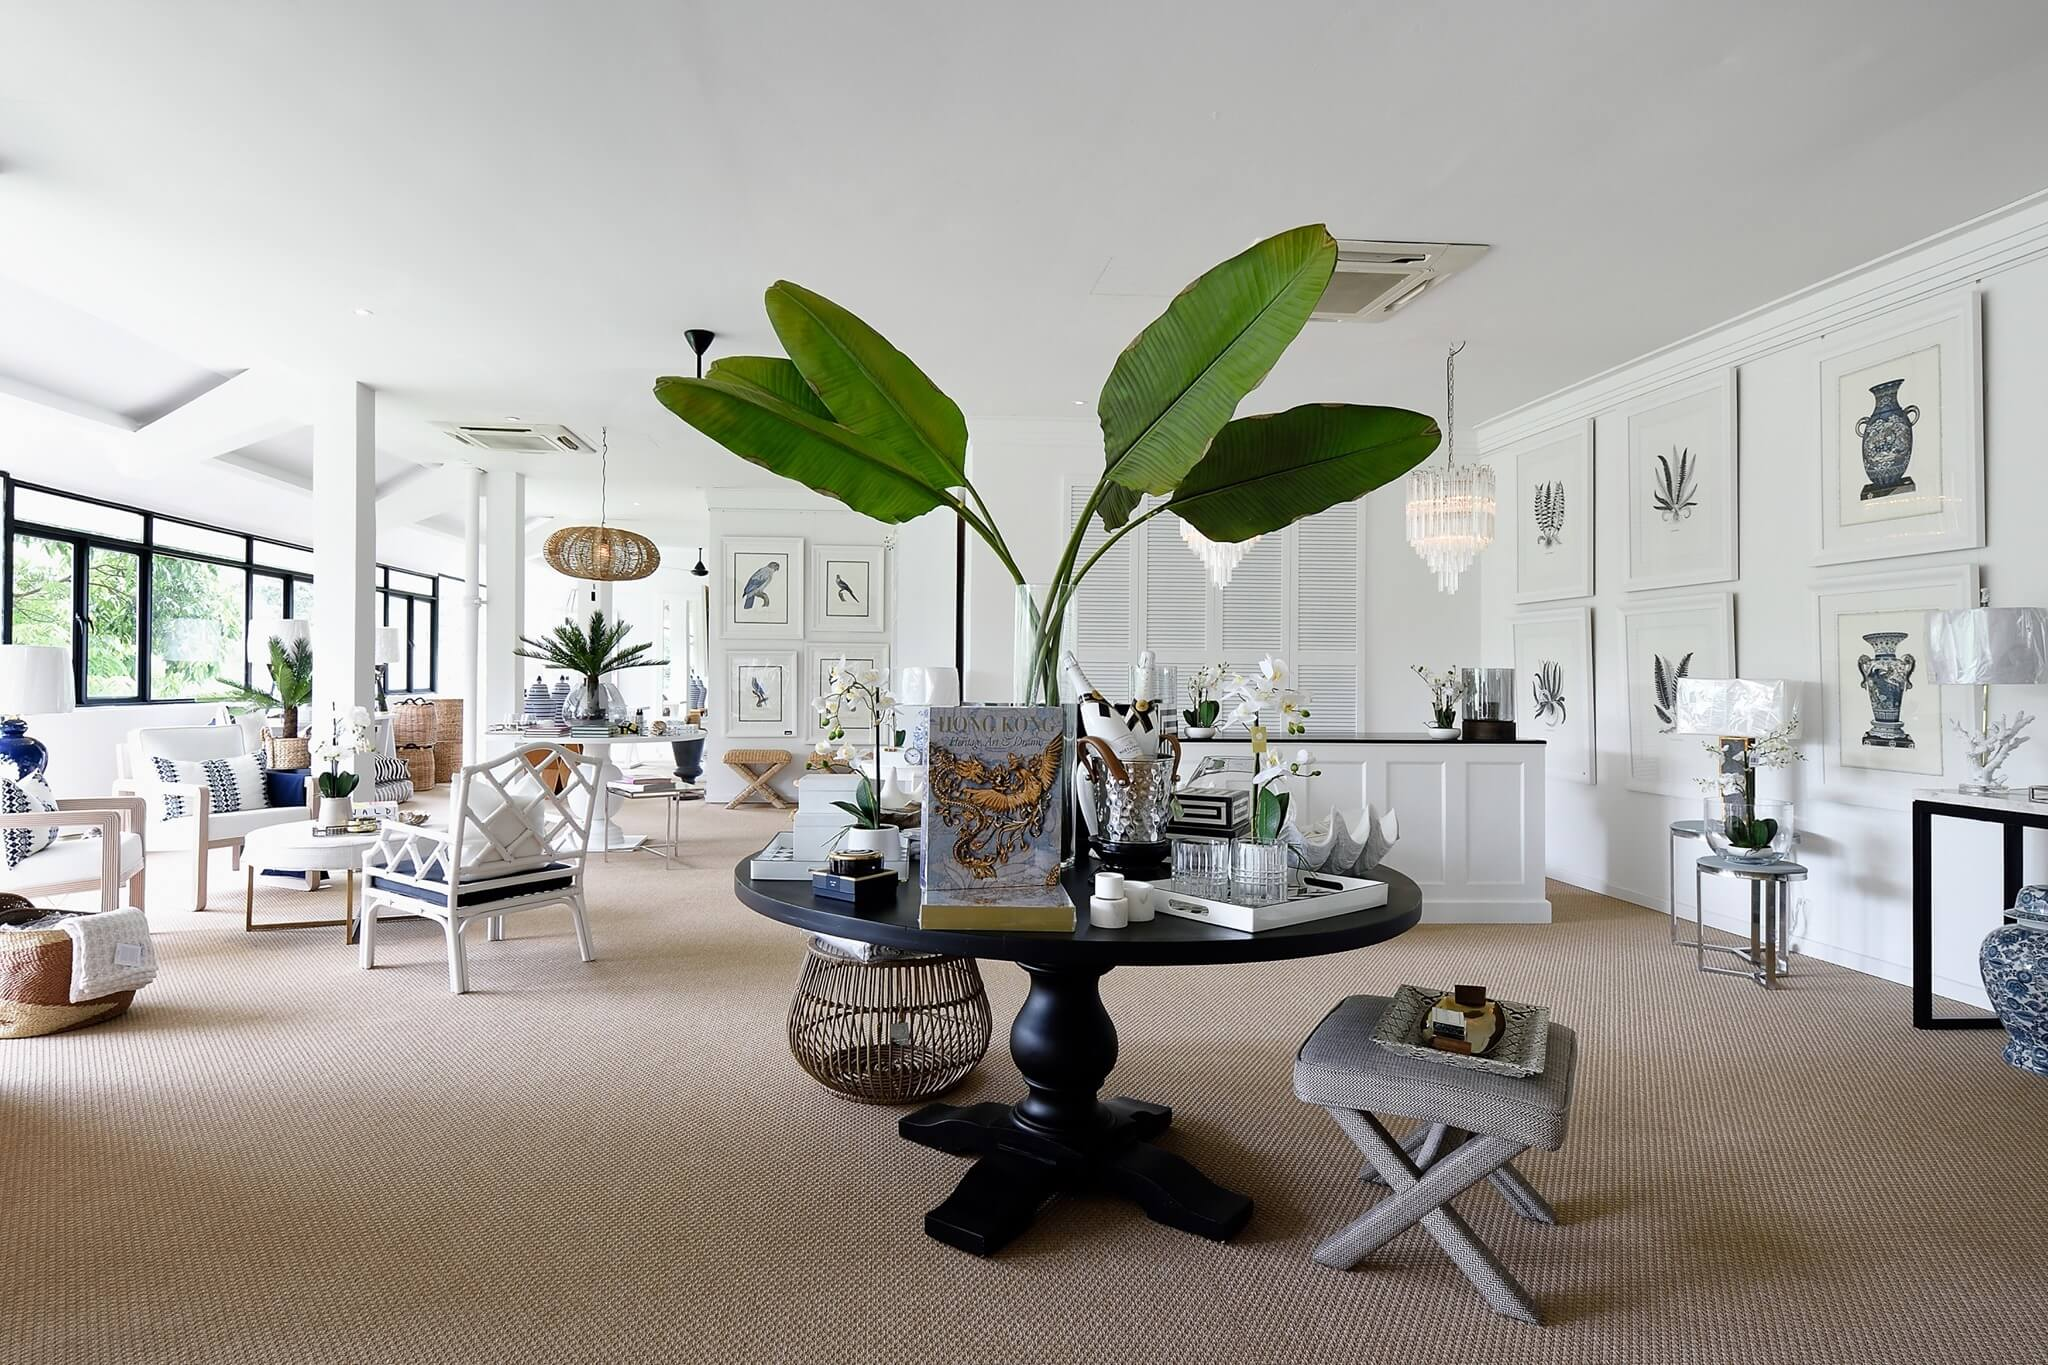 Best Home Decor Ideas For All The Garden Lovers